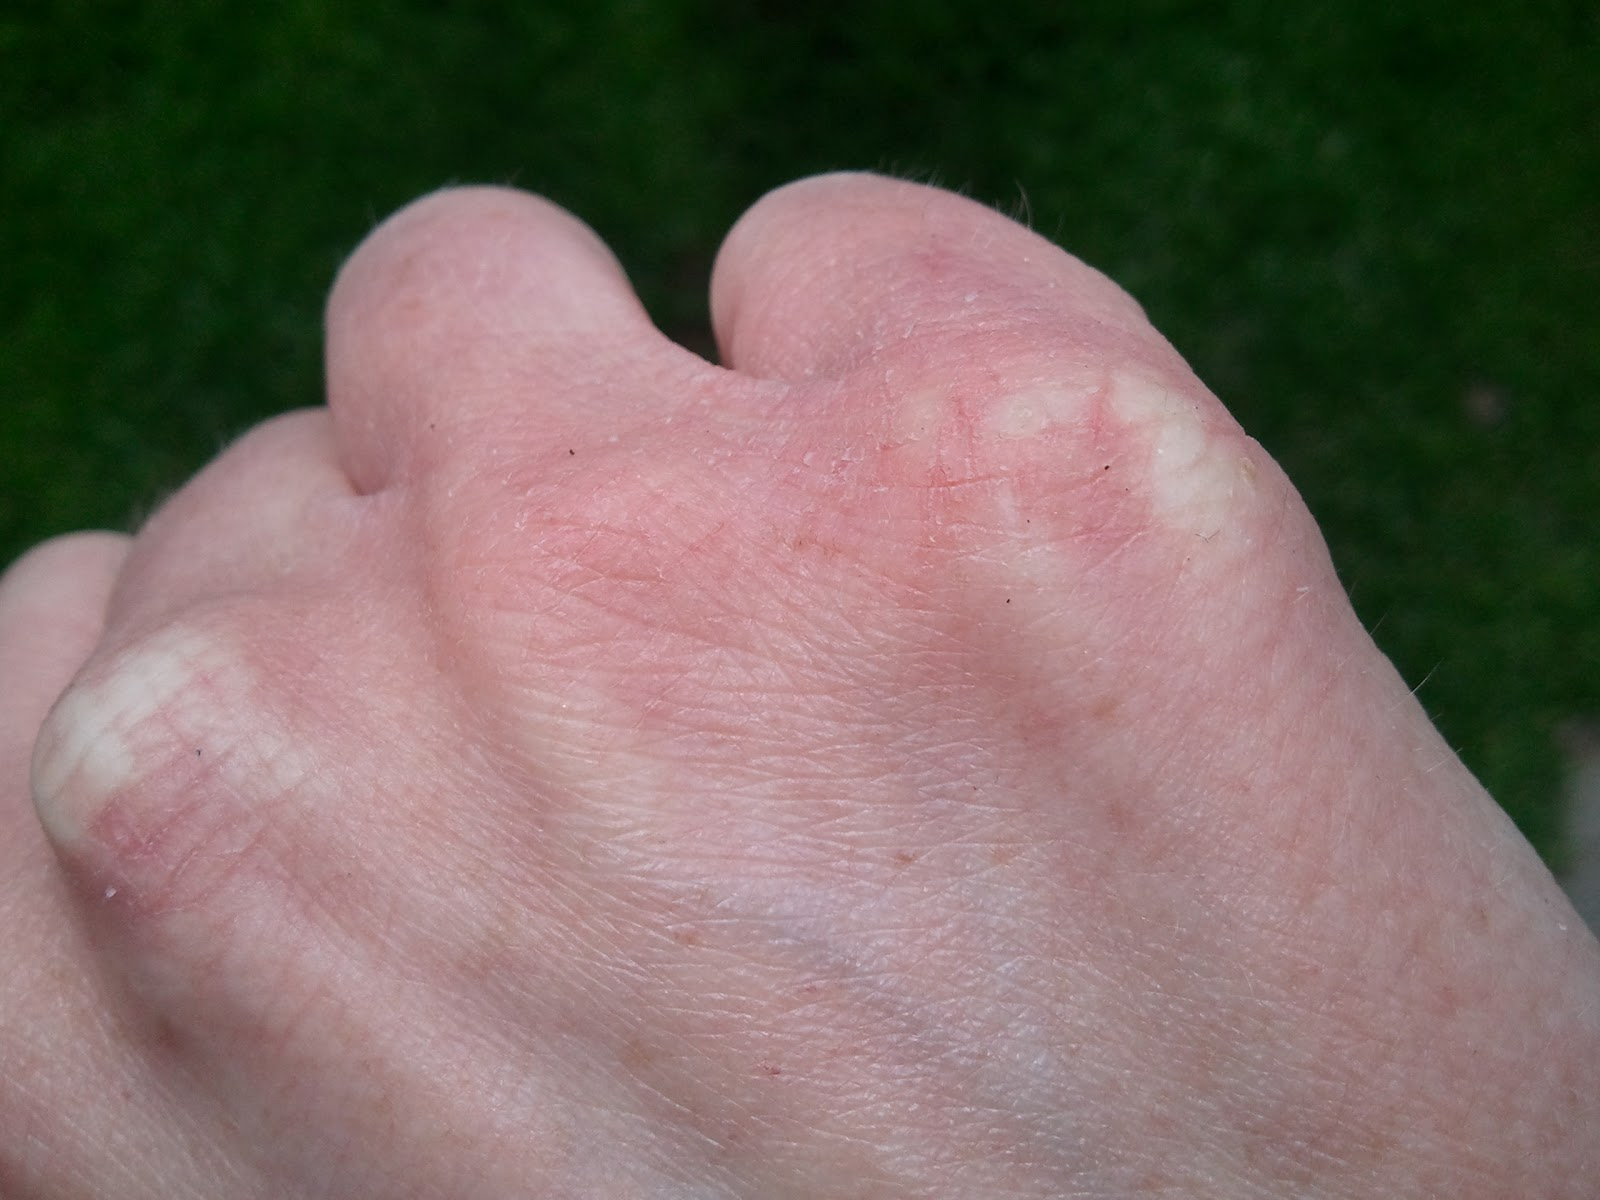 I have small little spots on my fingers that are like dry ...